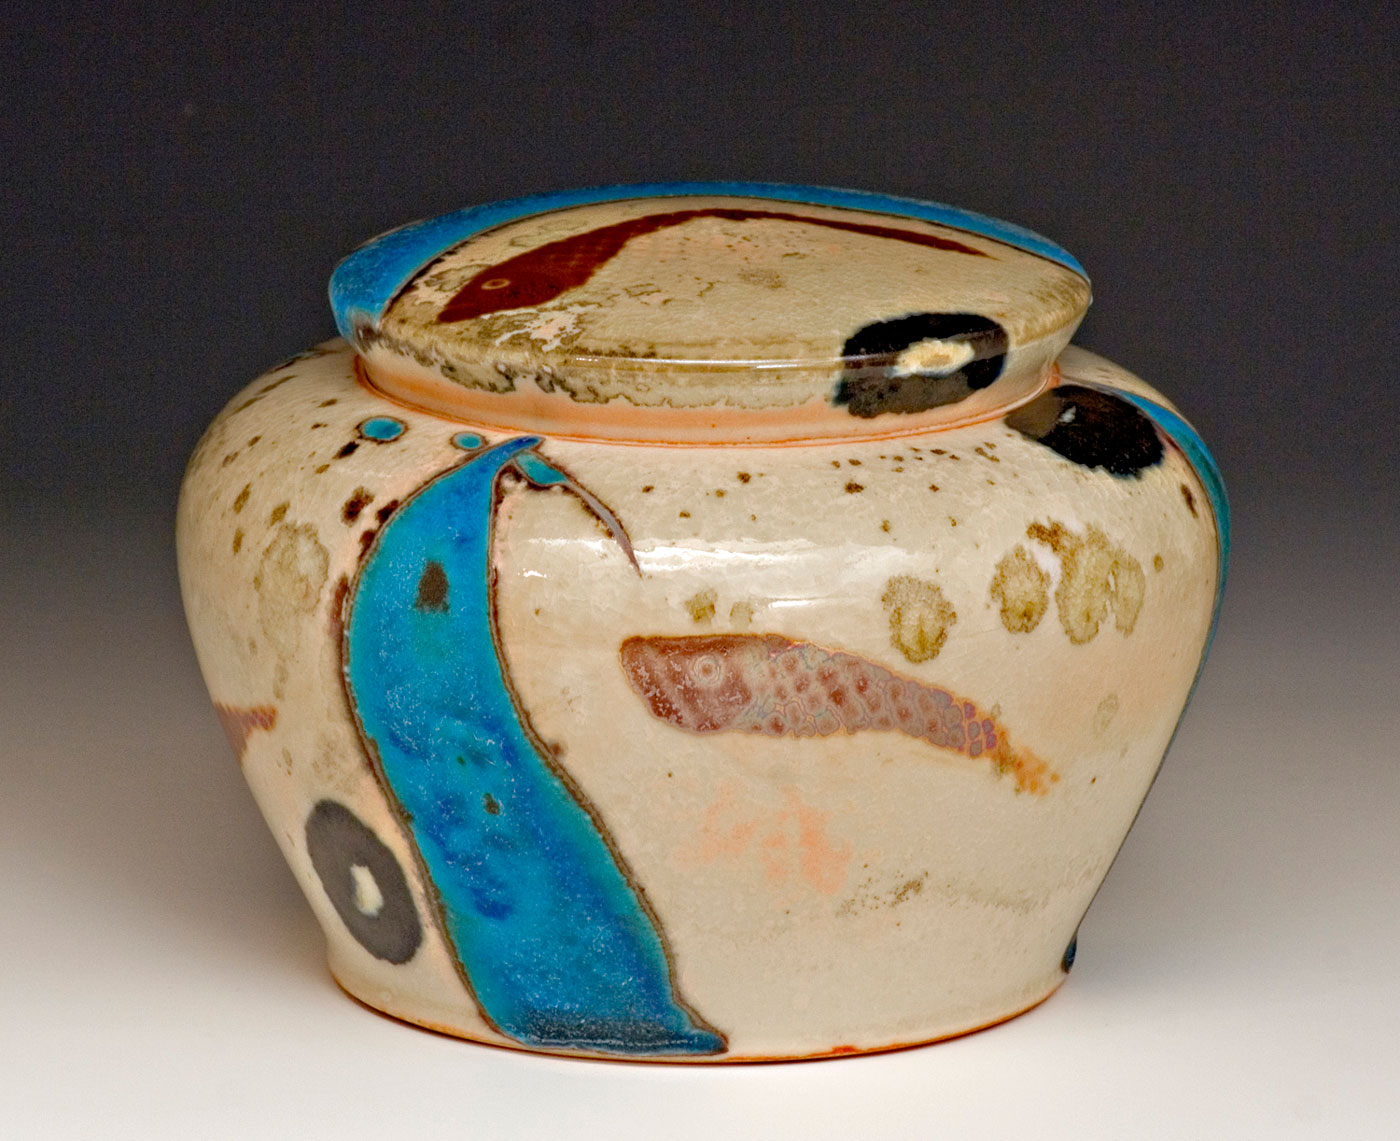 Shino-Ginger-Jar-with-Turquoise-Bruce-Gholson.jpg